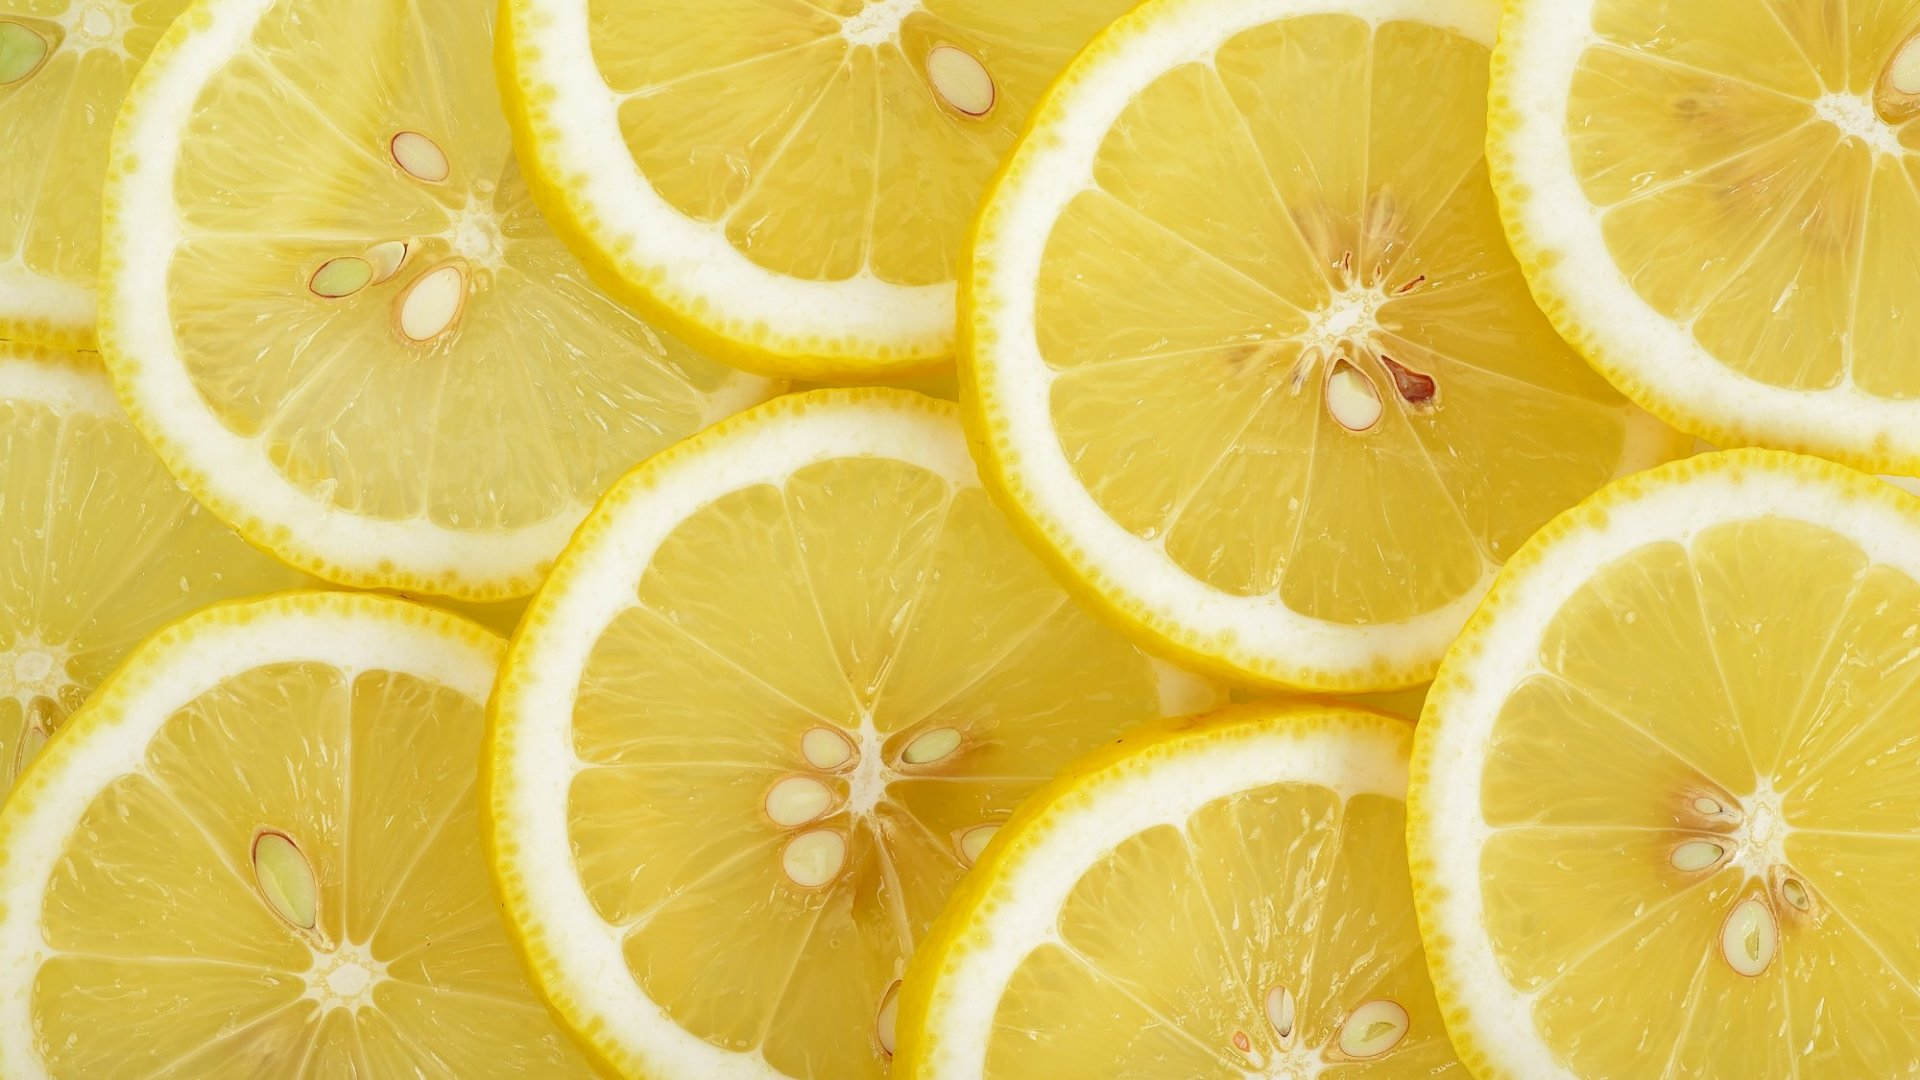 When Life Gave Him 110,000 Lemons, He Made a Top Selling Limoncello. Here's How.